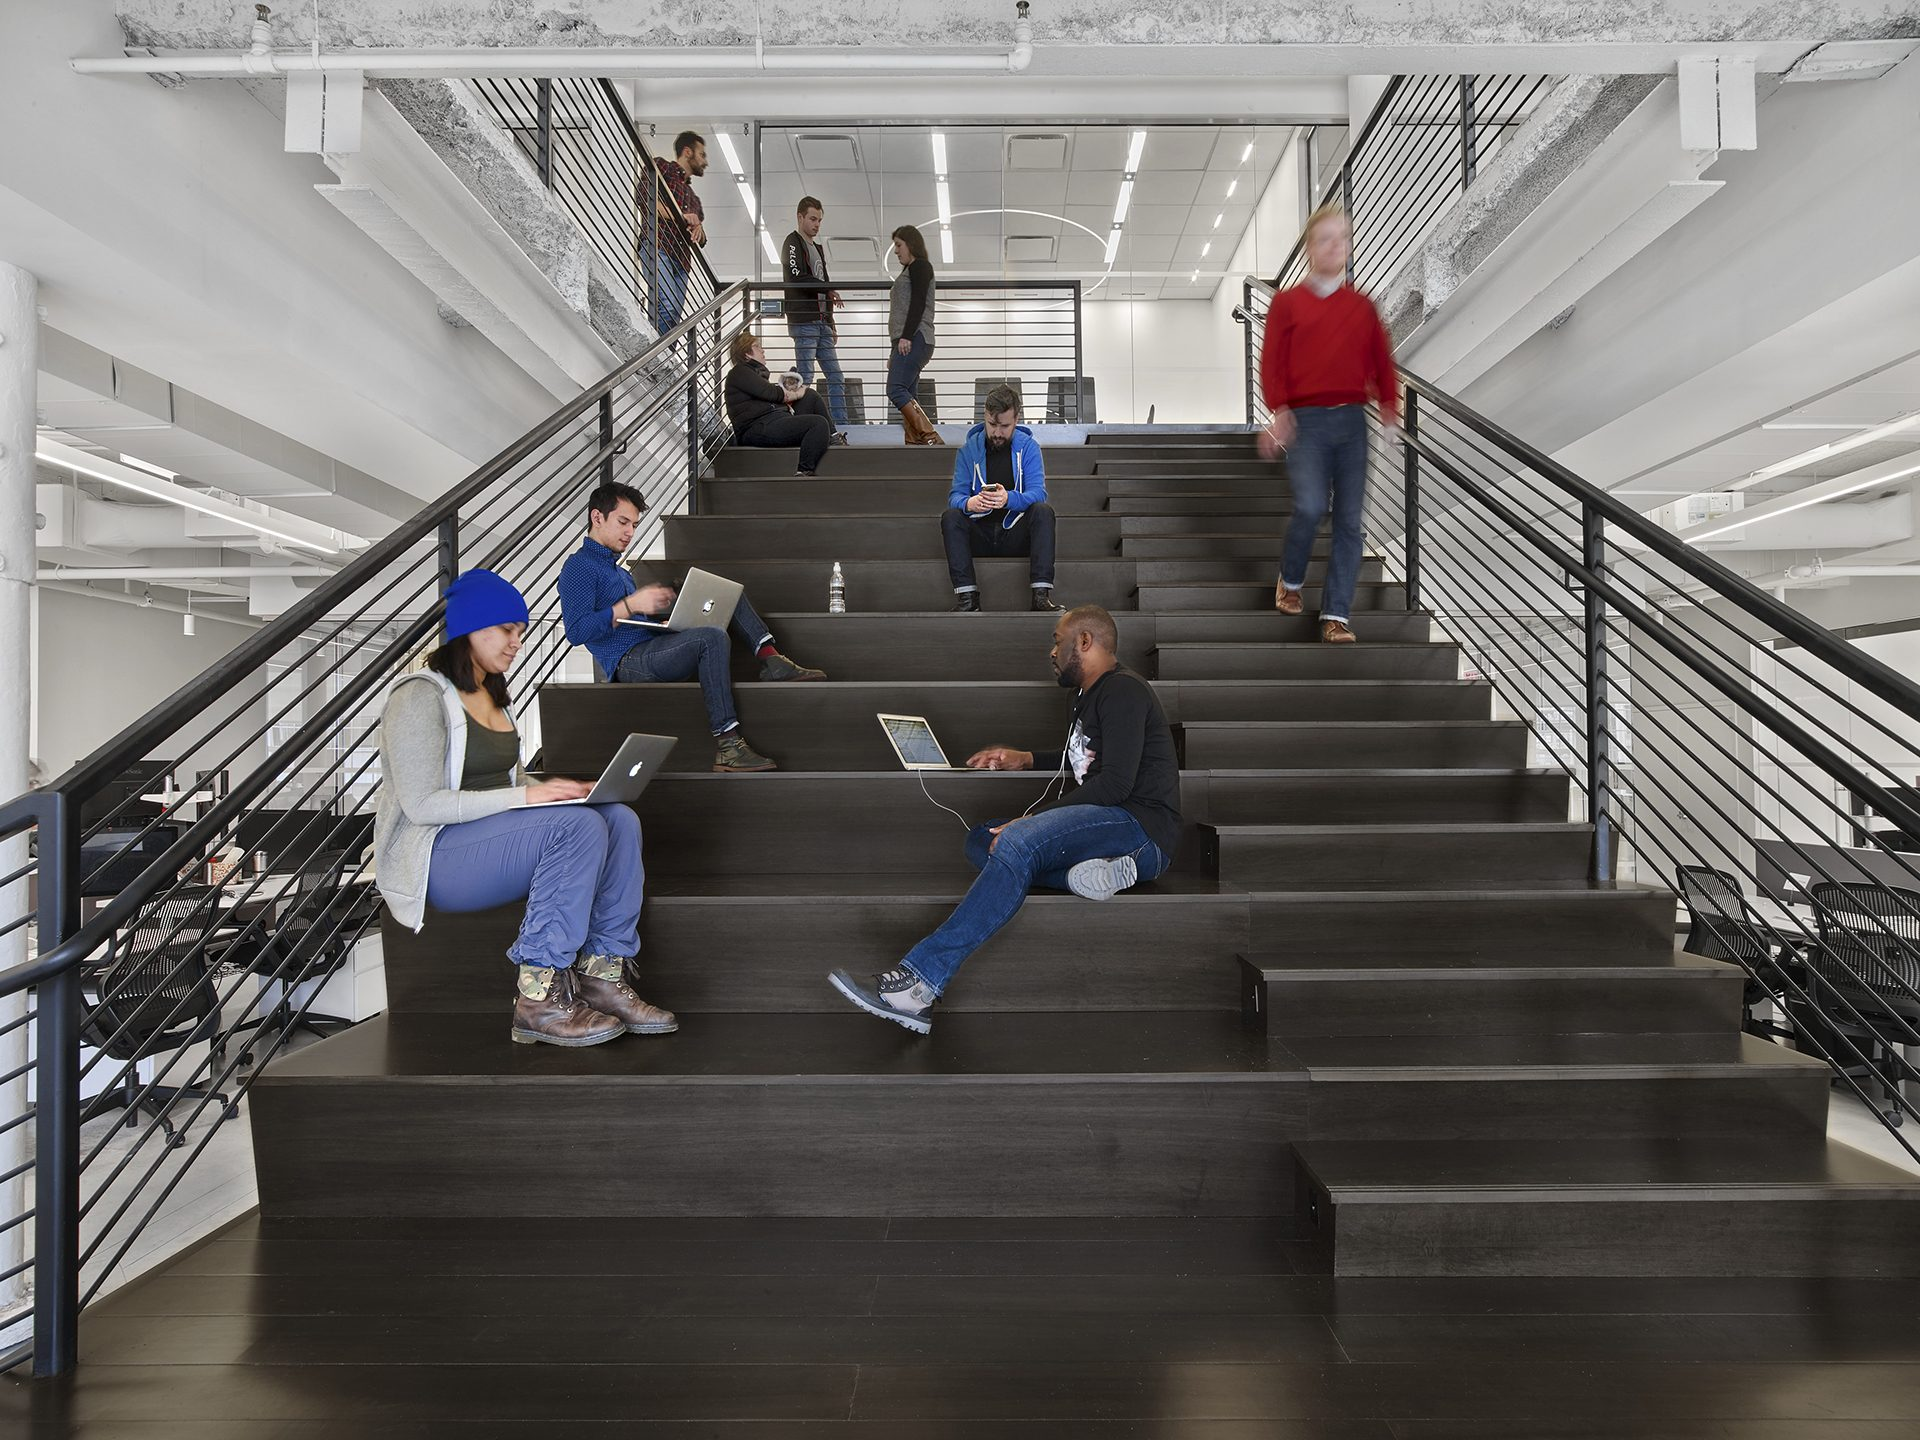 Interconnecting stair doubles as an all-hands space at Peloton's first headquarters